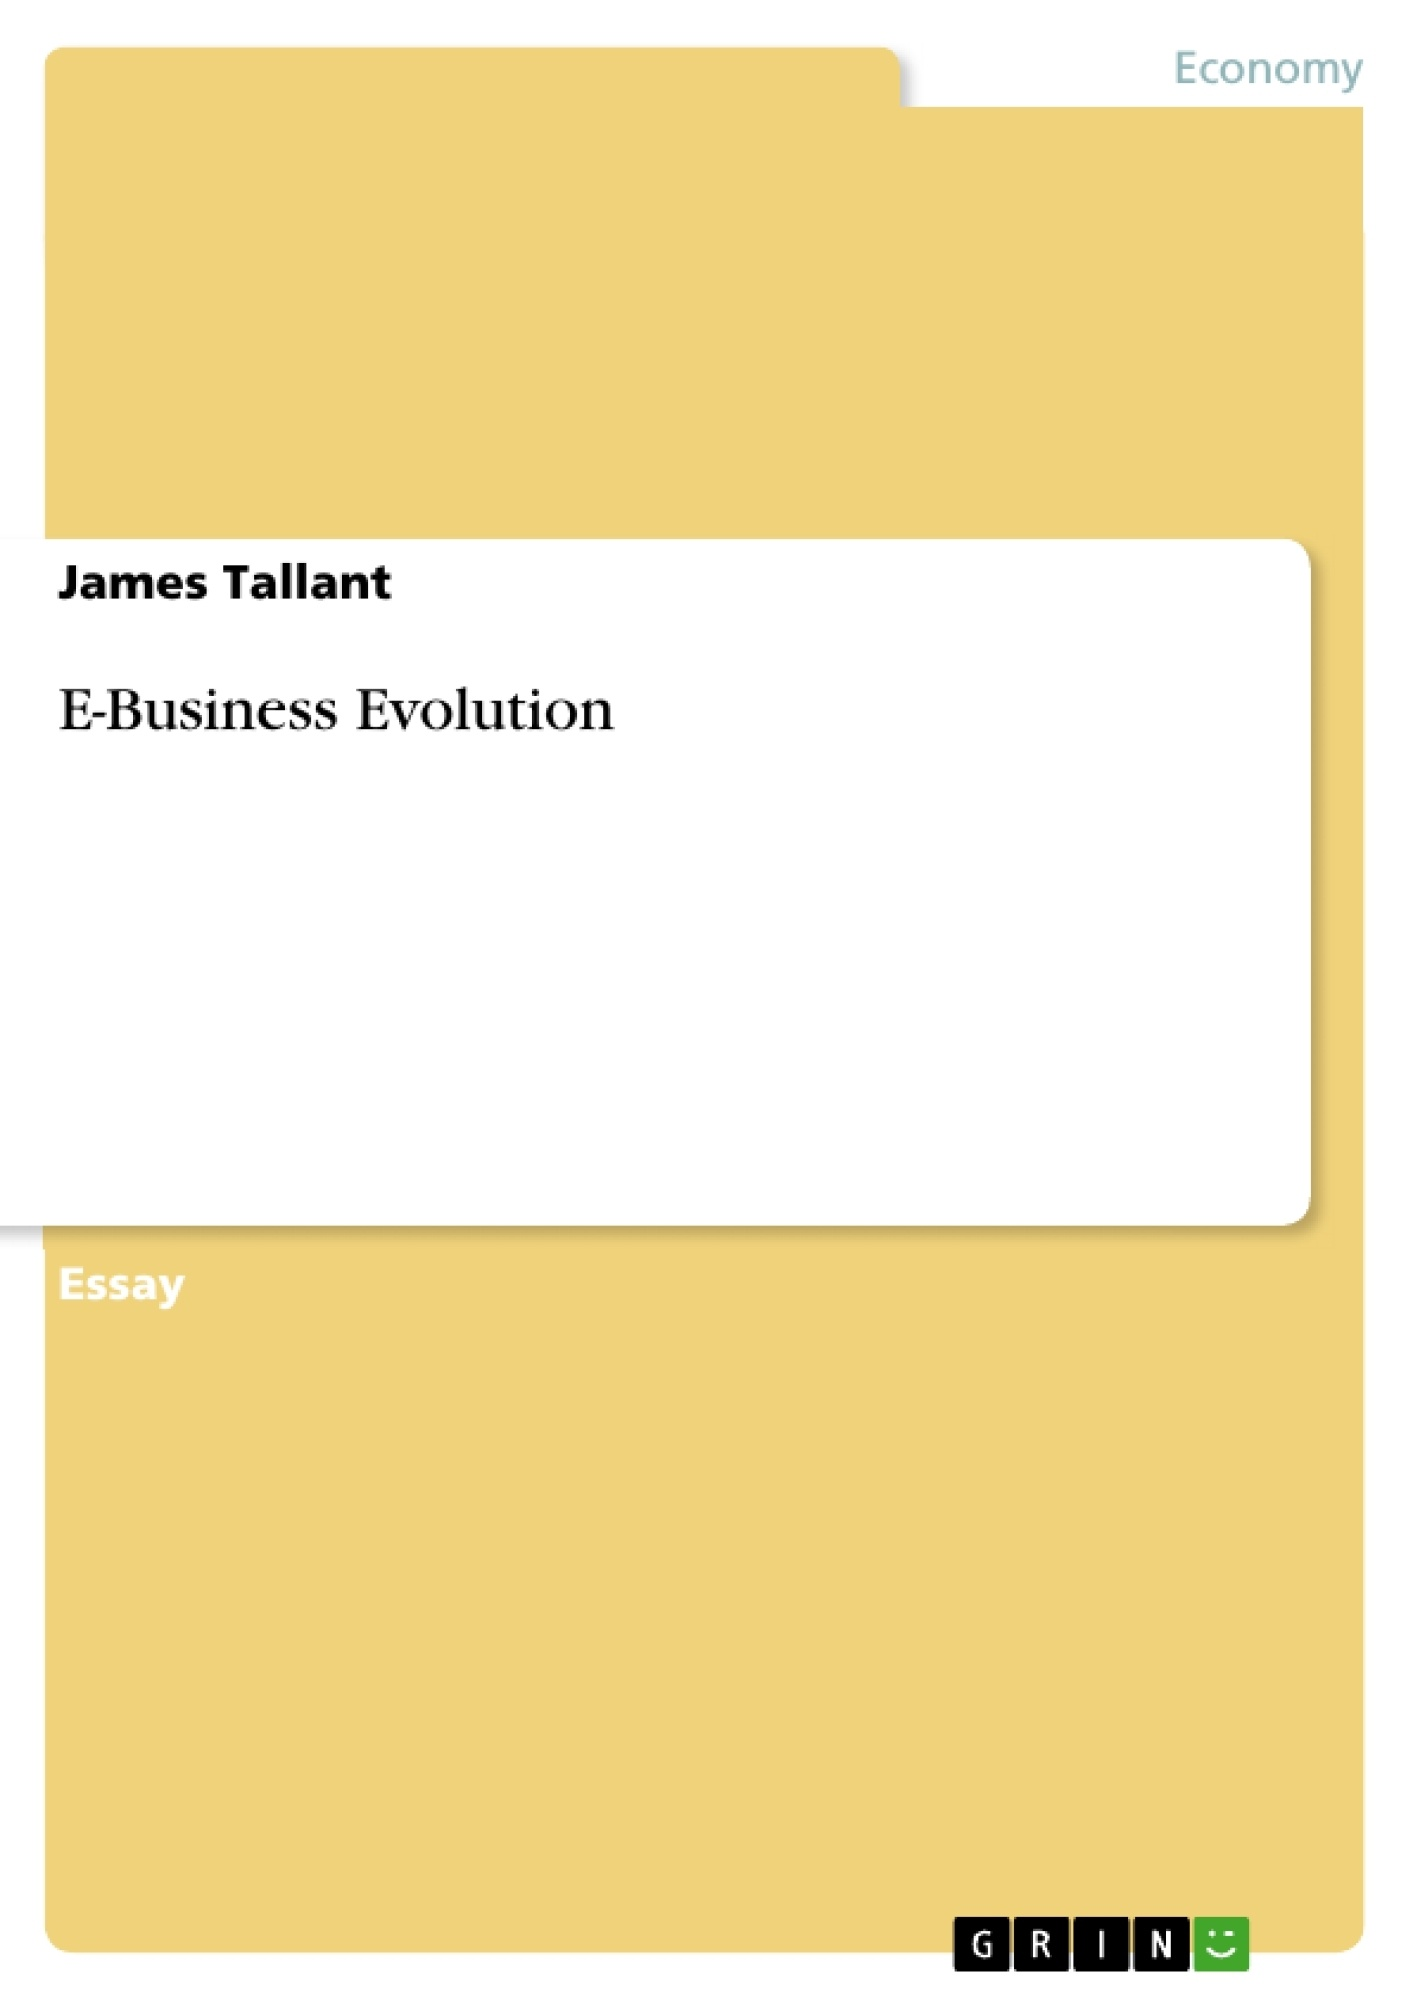 evolution term papers Bisc 495-010, evolution, spring 2007 term paper choose a topic you are required to write a term paper on some aspect of evolutionary biology on friday, march 2, you.